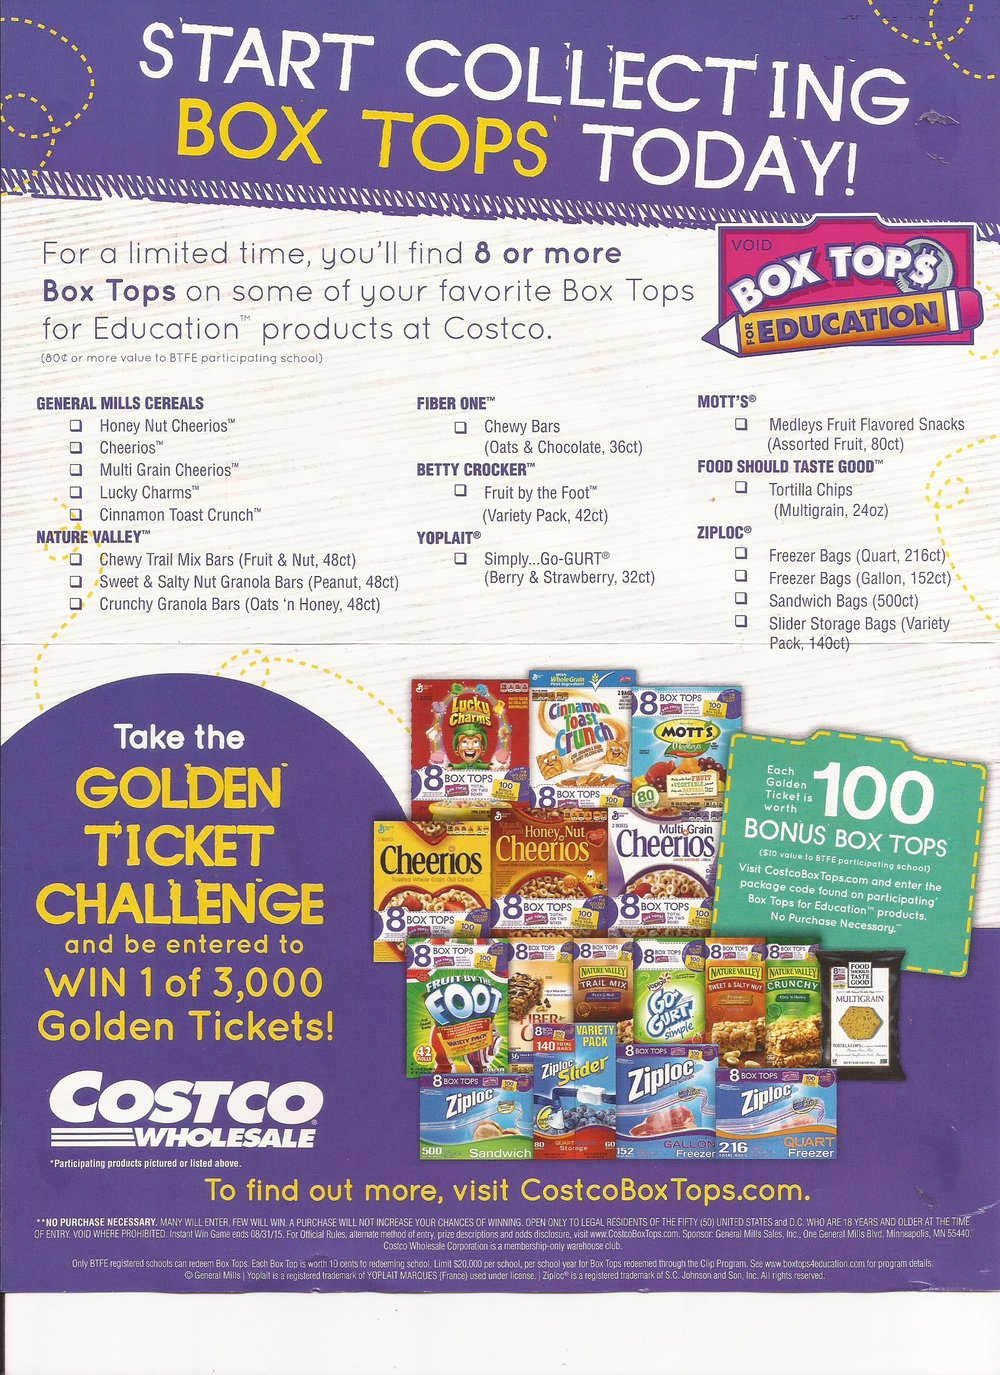 Costco Golden Ticket Challenge -